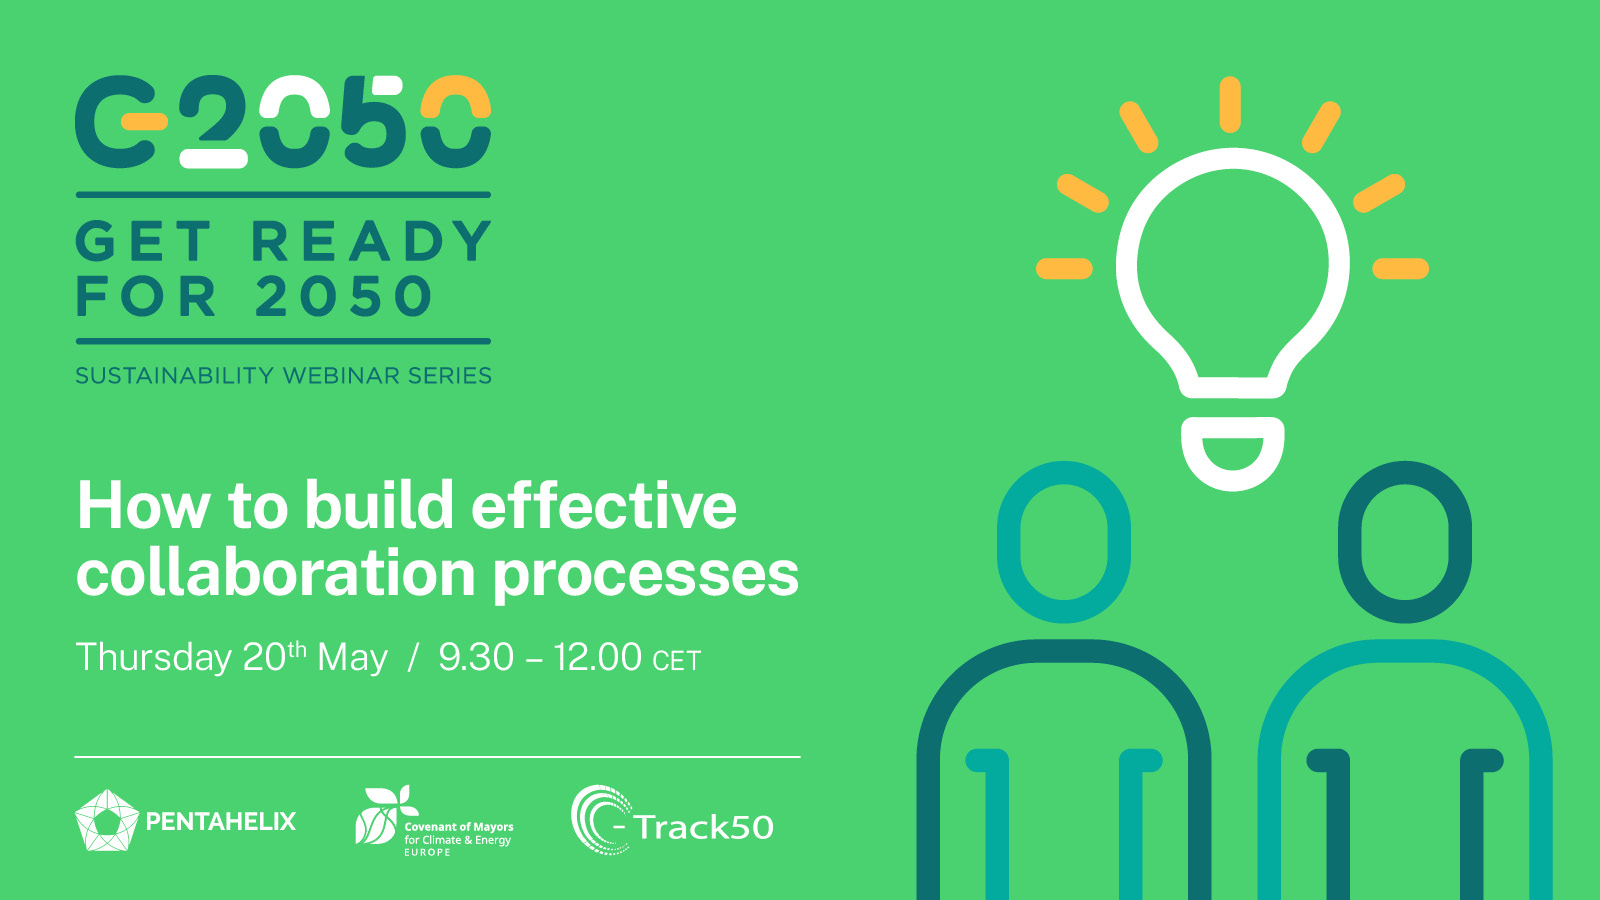 GET READY FOR 2050: How to Build Effective Collaboration Processes